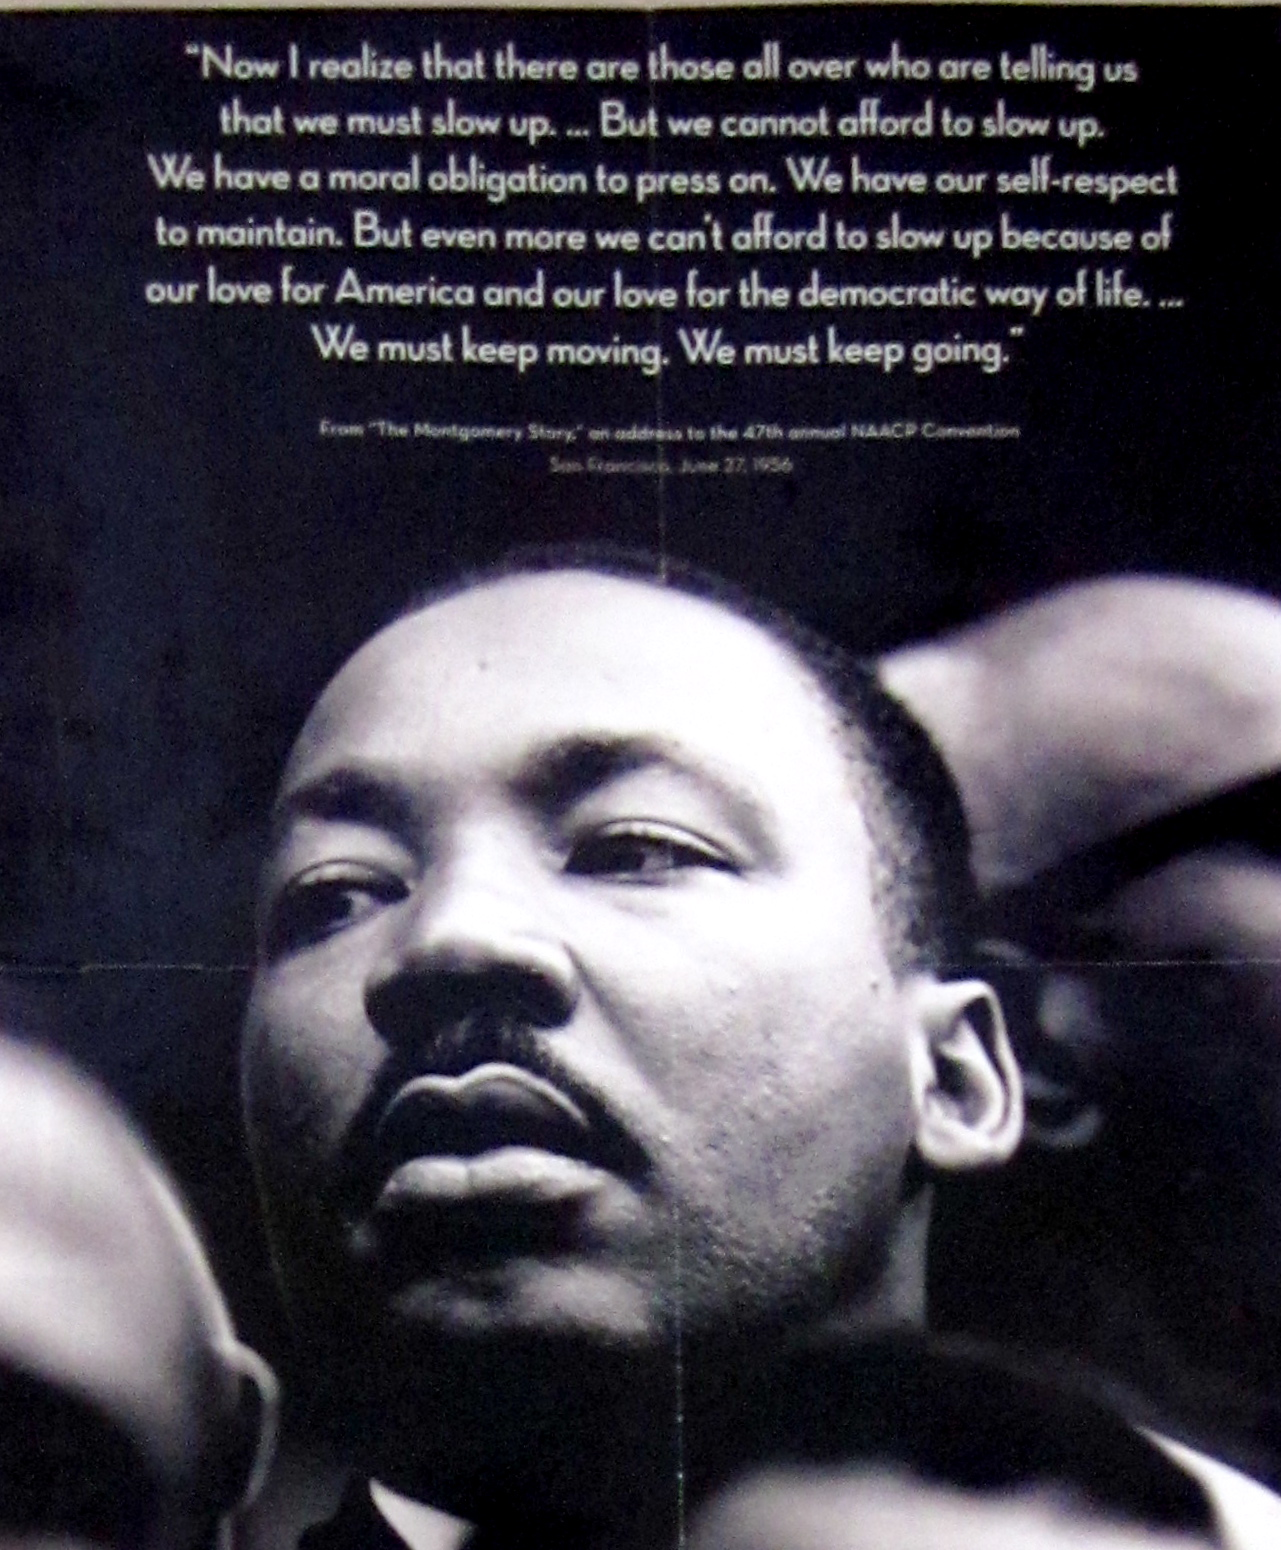 Martin Luther King Love Quotes School Counselor Blog Taking Steps To Make Drmartin Luther King